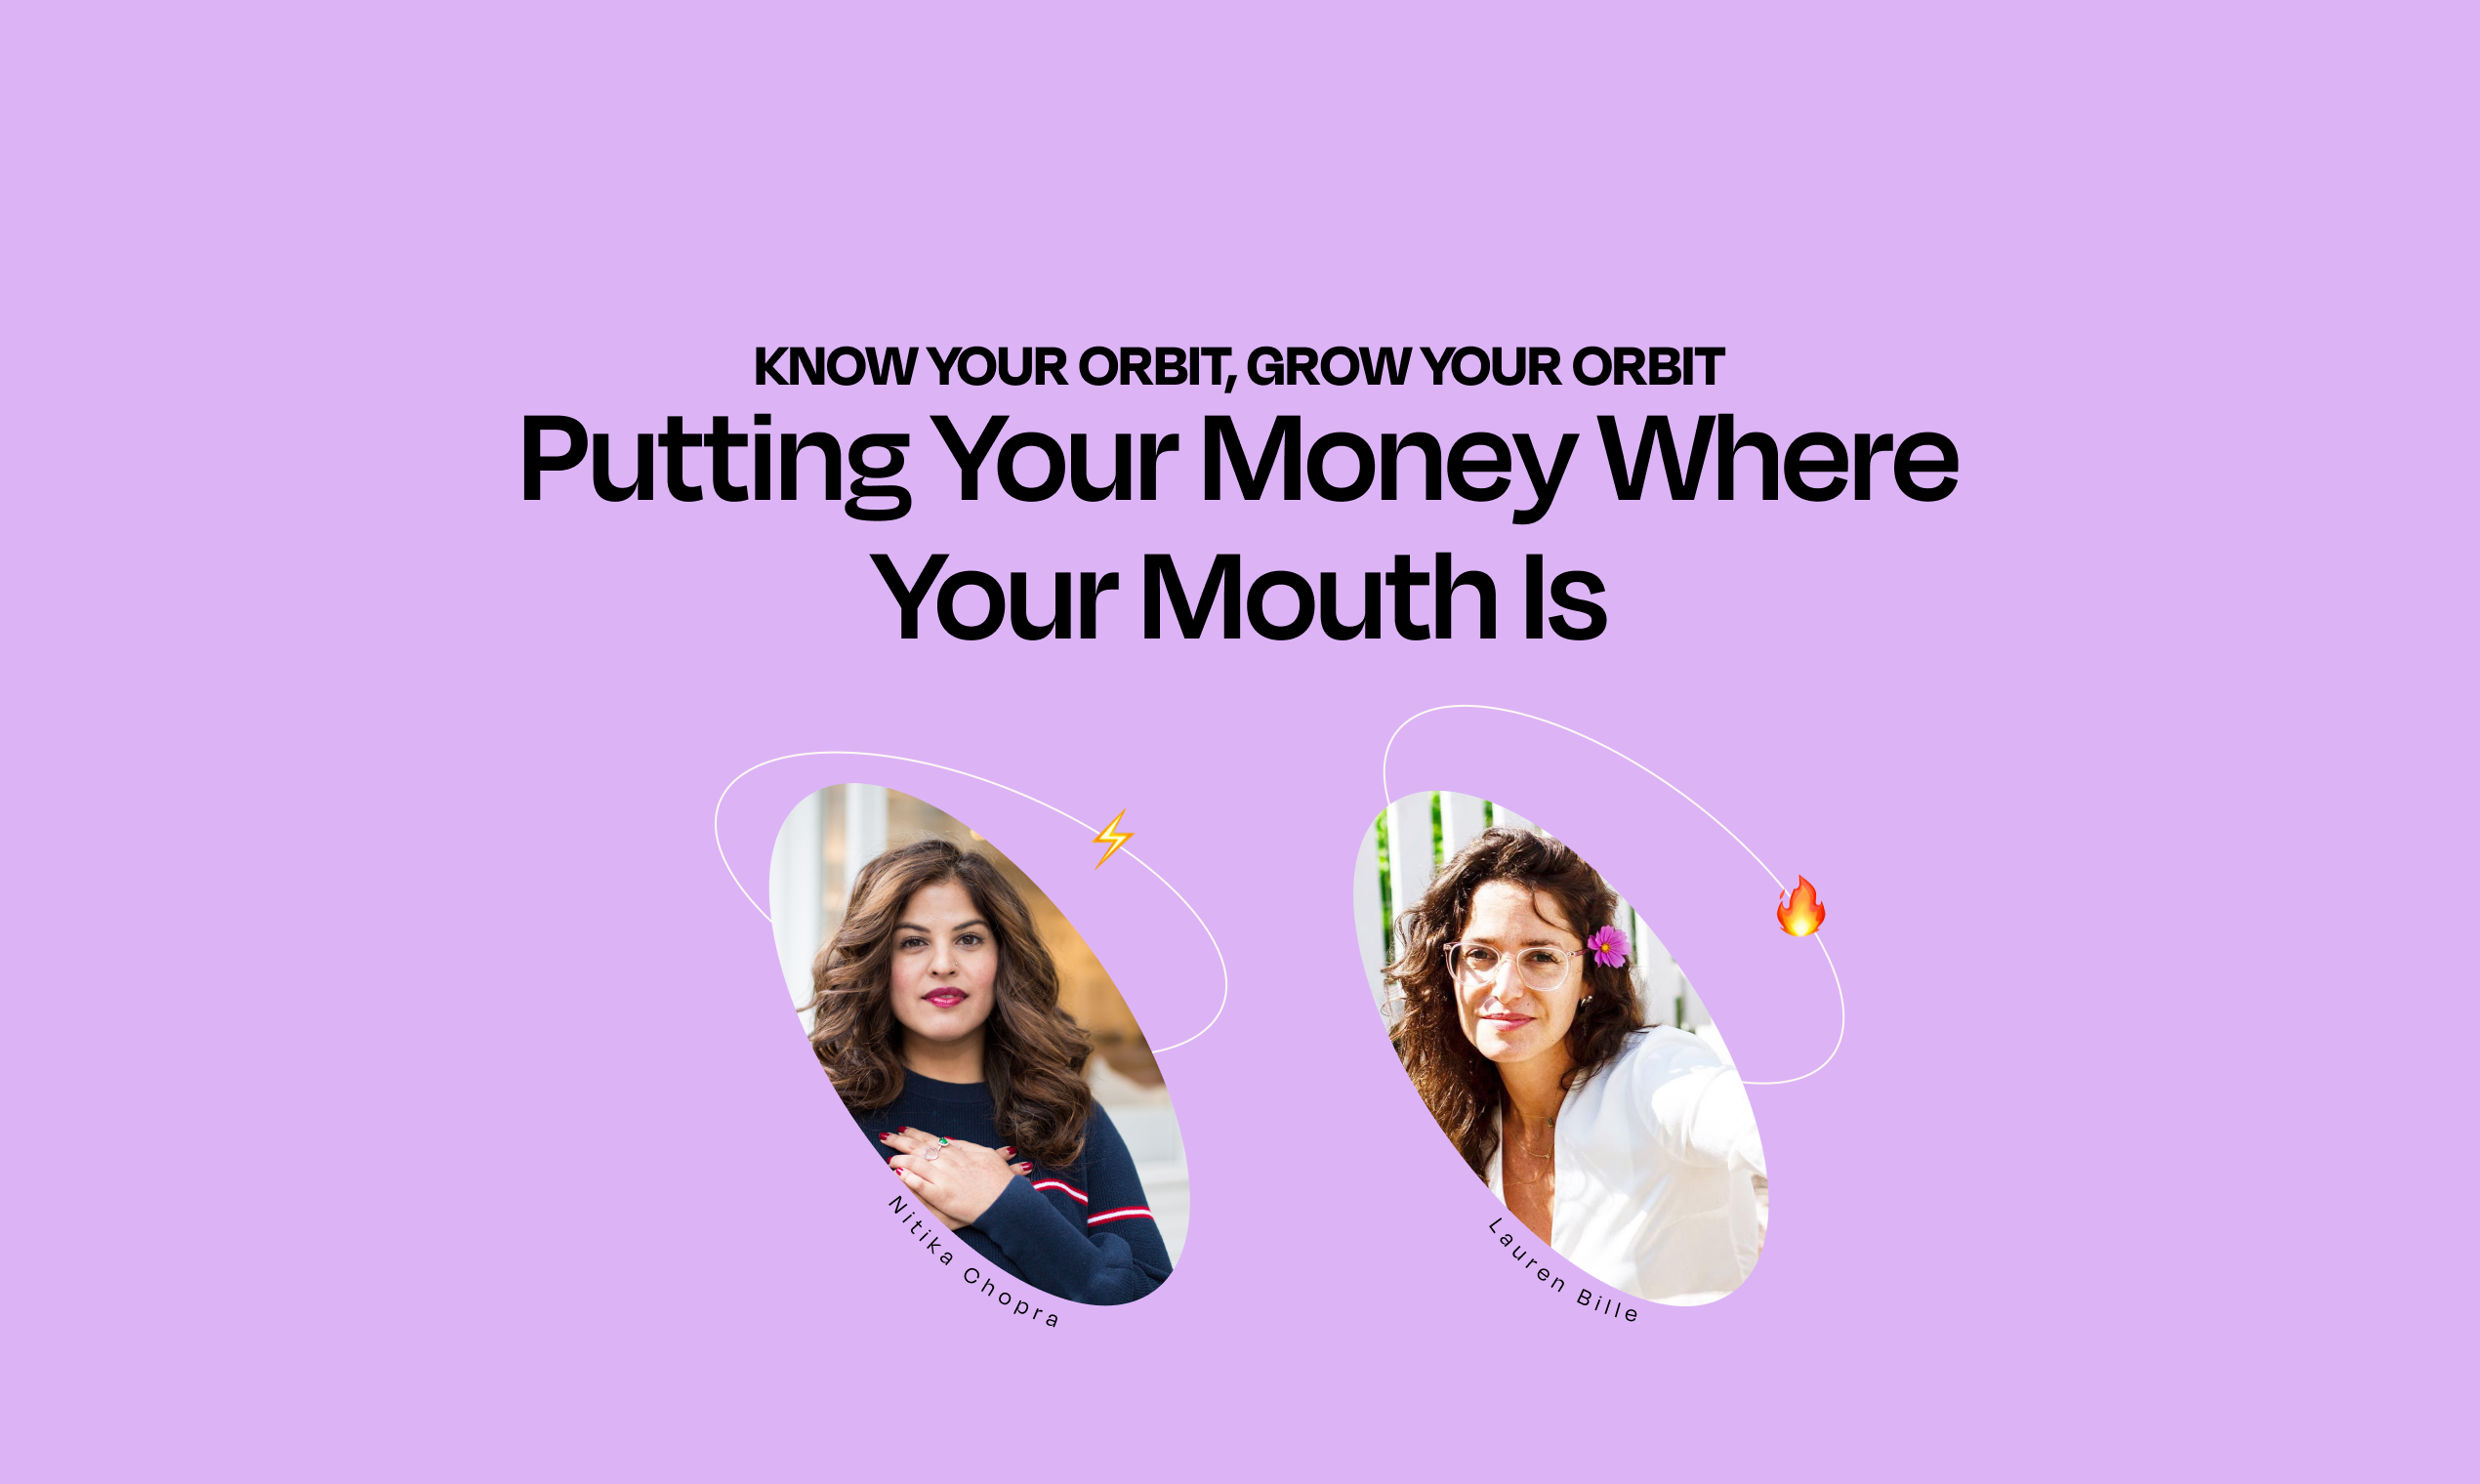 Know Your Orbit, Grow Your Orbit Event 4 Recap: Putting Your Money Where Your Mouth Is